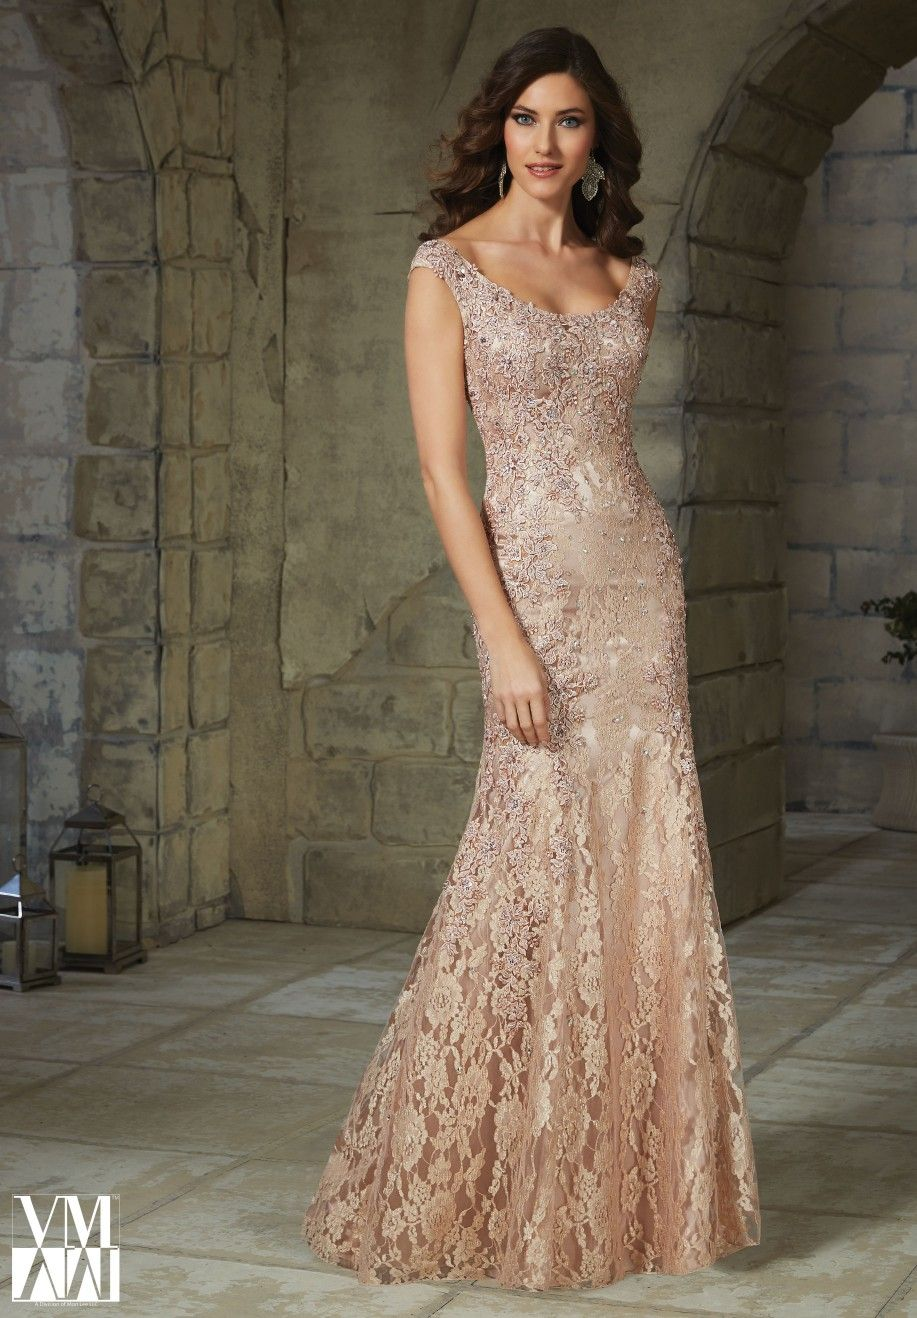 Morilee mgny evening gowns style elegant mother of the bride